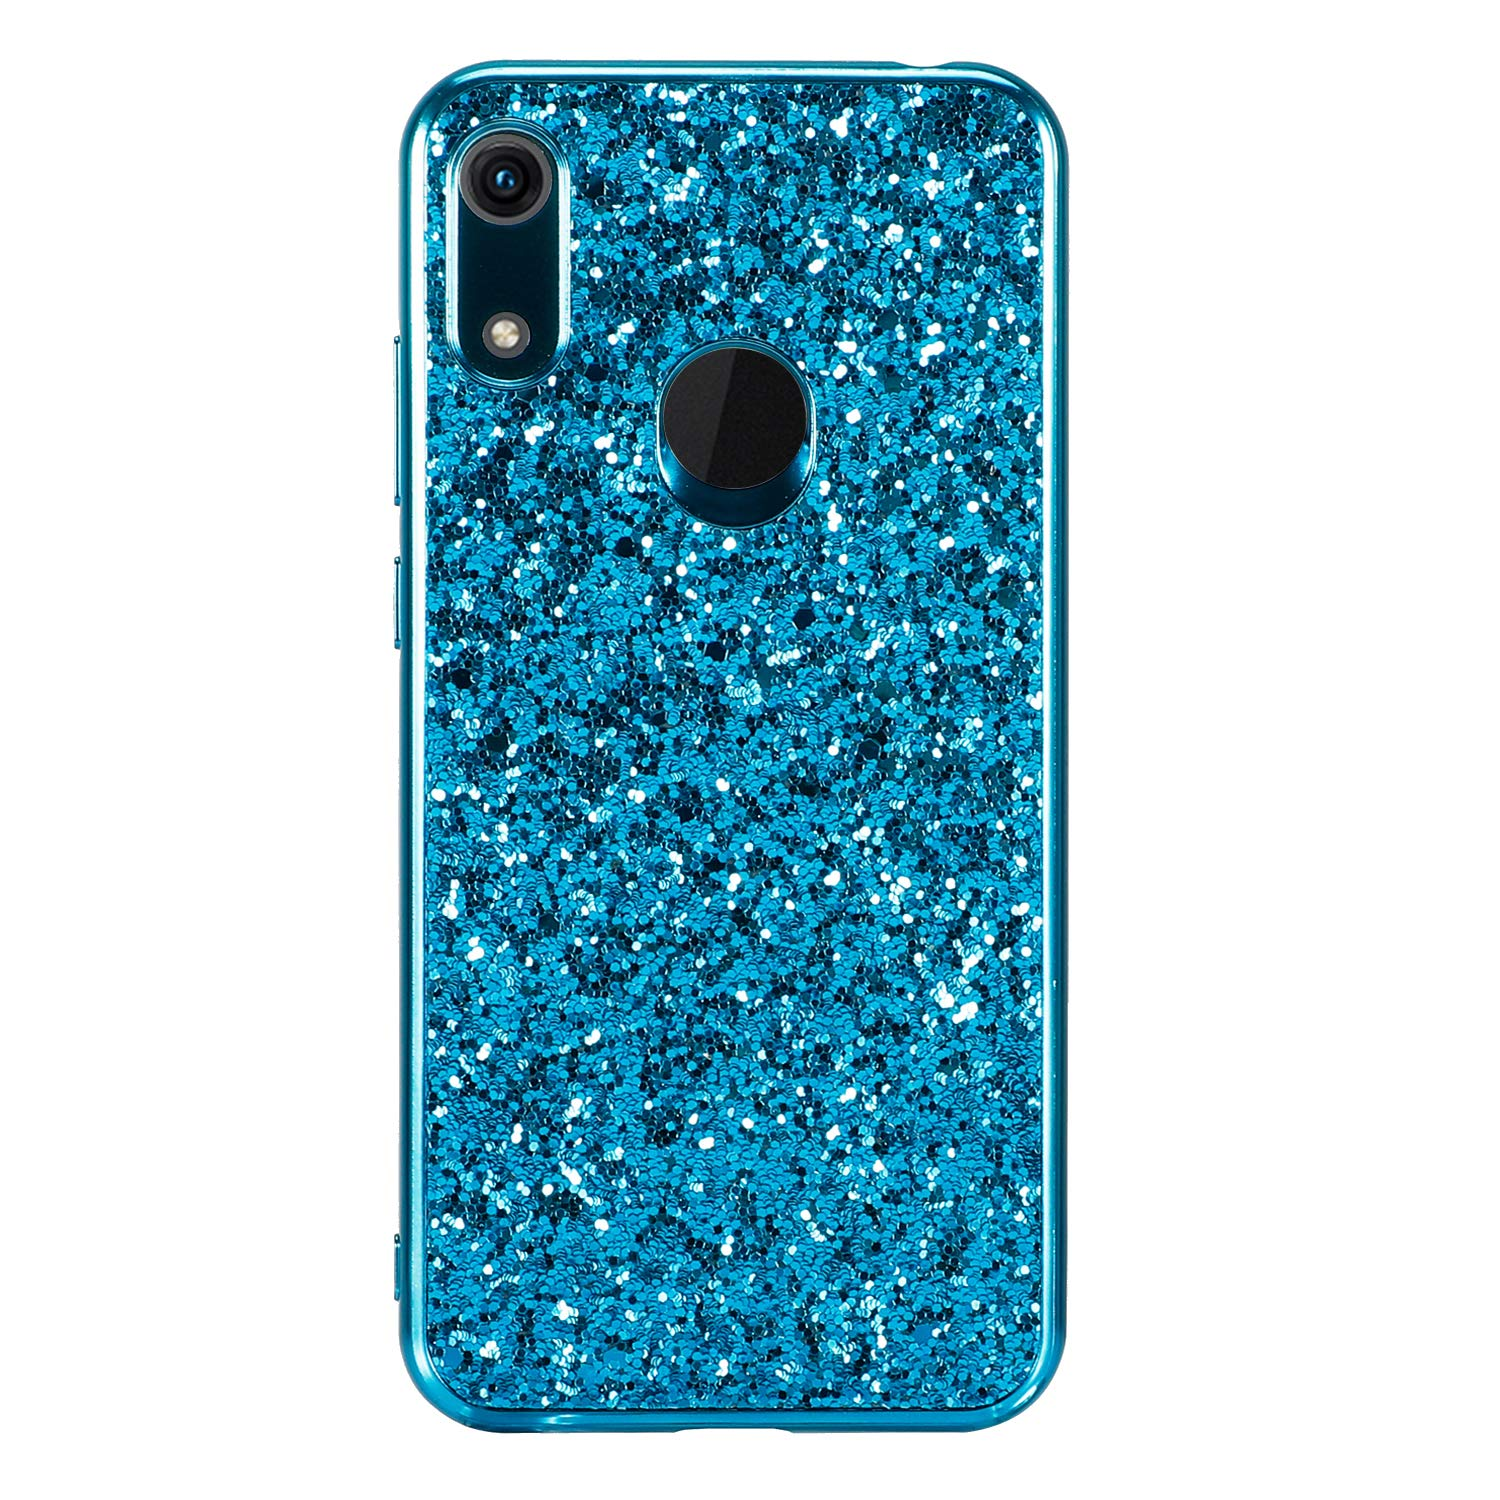 Miagon Glitter Back Case for Huawei Y6 2019,Electroplated Frame Shock Absorption Anti Scratch Shiny Sparkle Silicone Bumper Back Protective Case Cover for Huawei Y6 2019